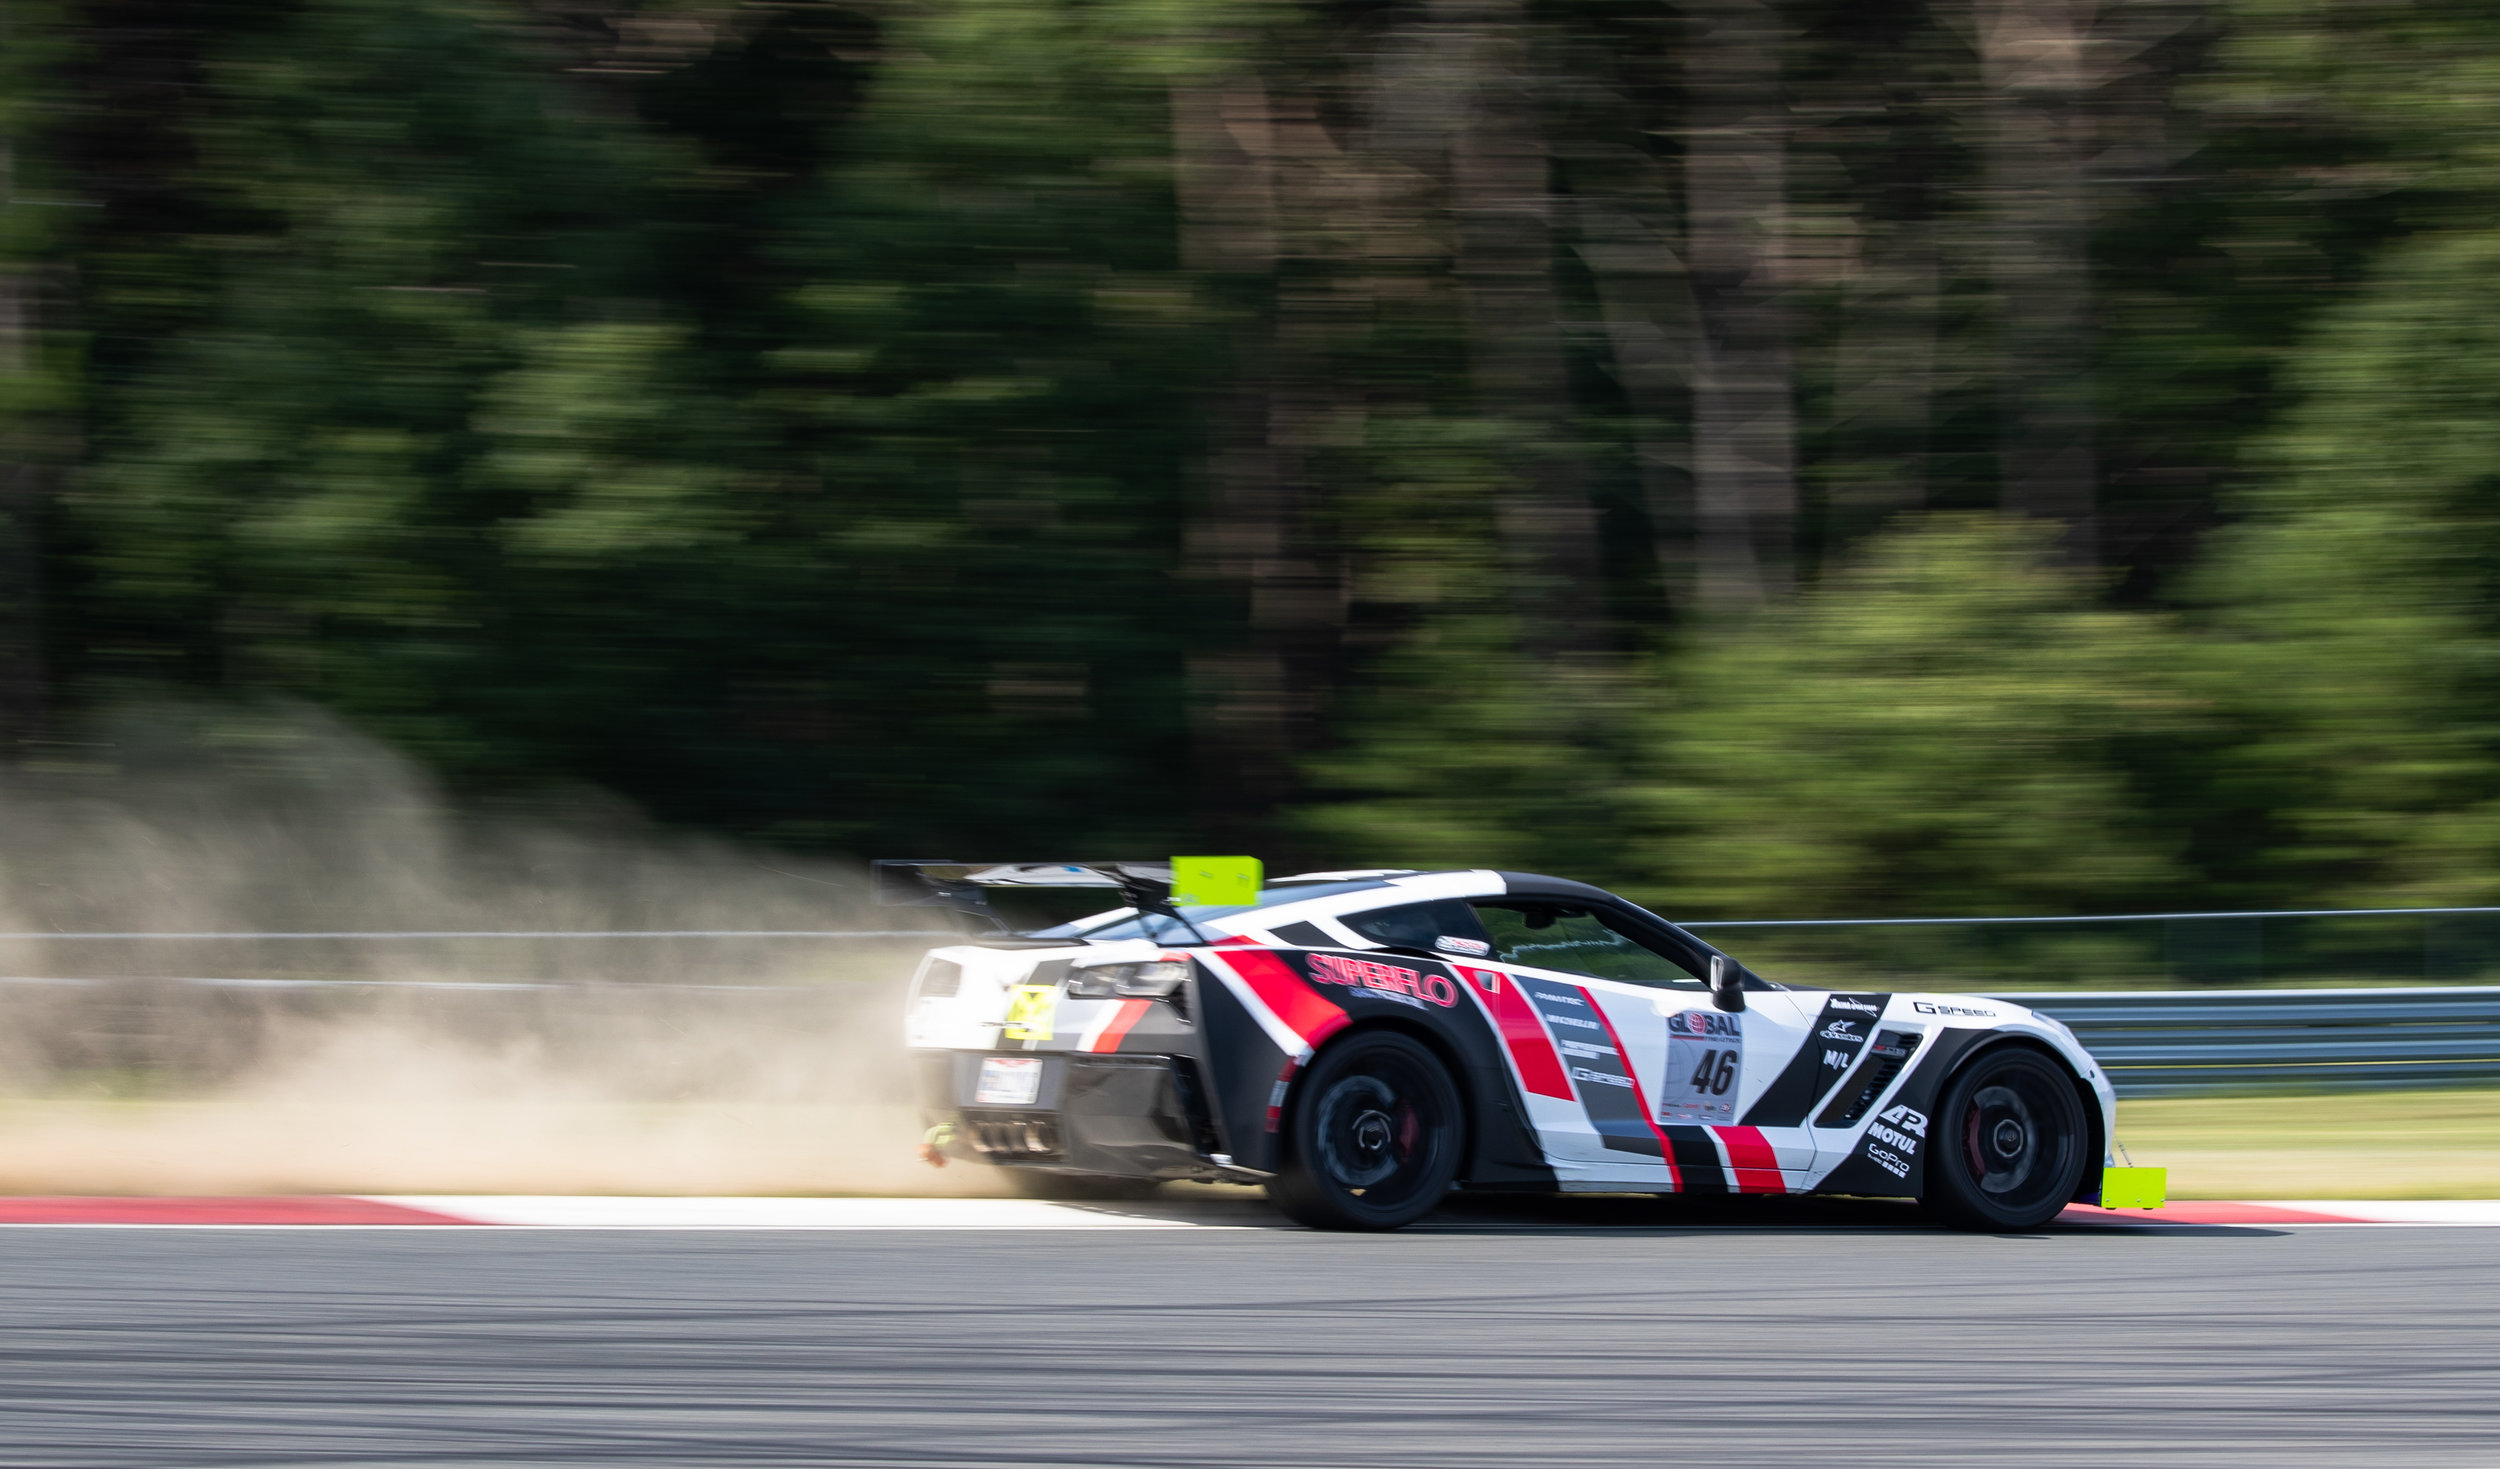 Steven Green cuts turn 1 slightly too wide in his C7 Corvette during his session on the track.